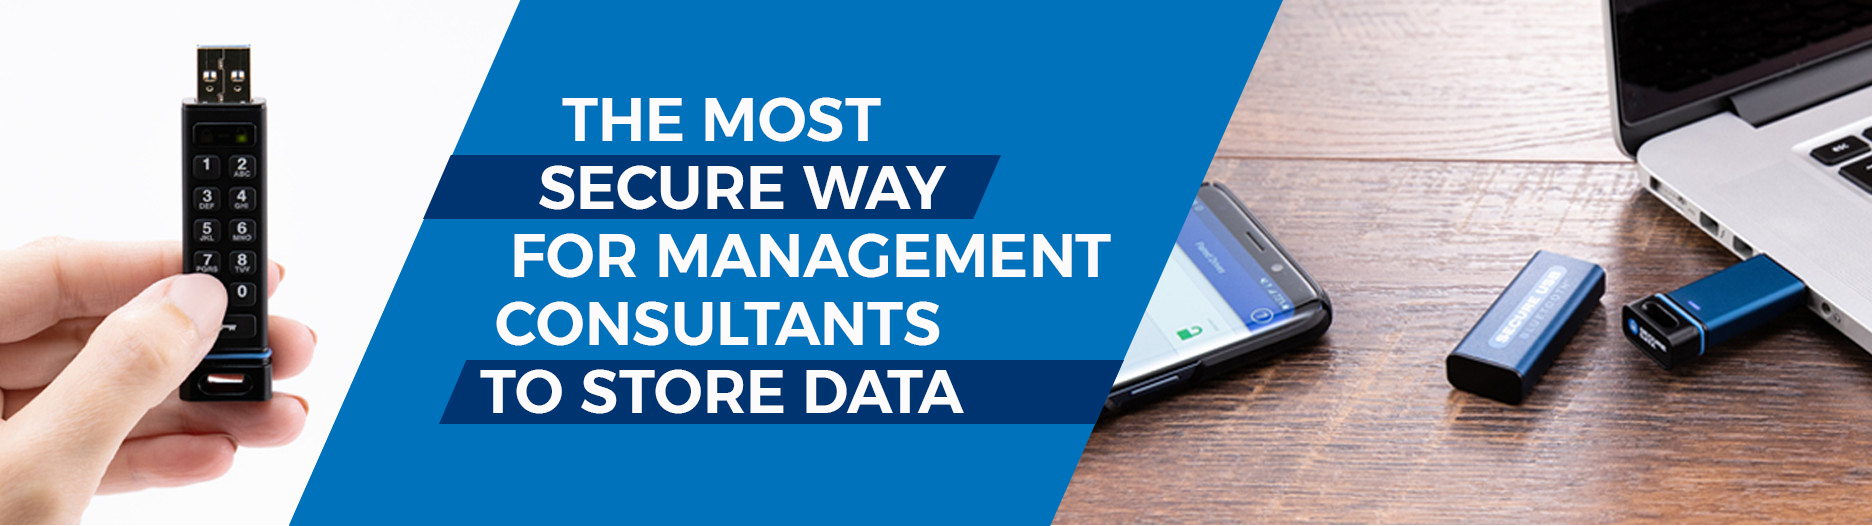 Management Consultants Use Case - The most secure way to store data for management and risk consultants